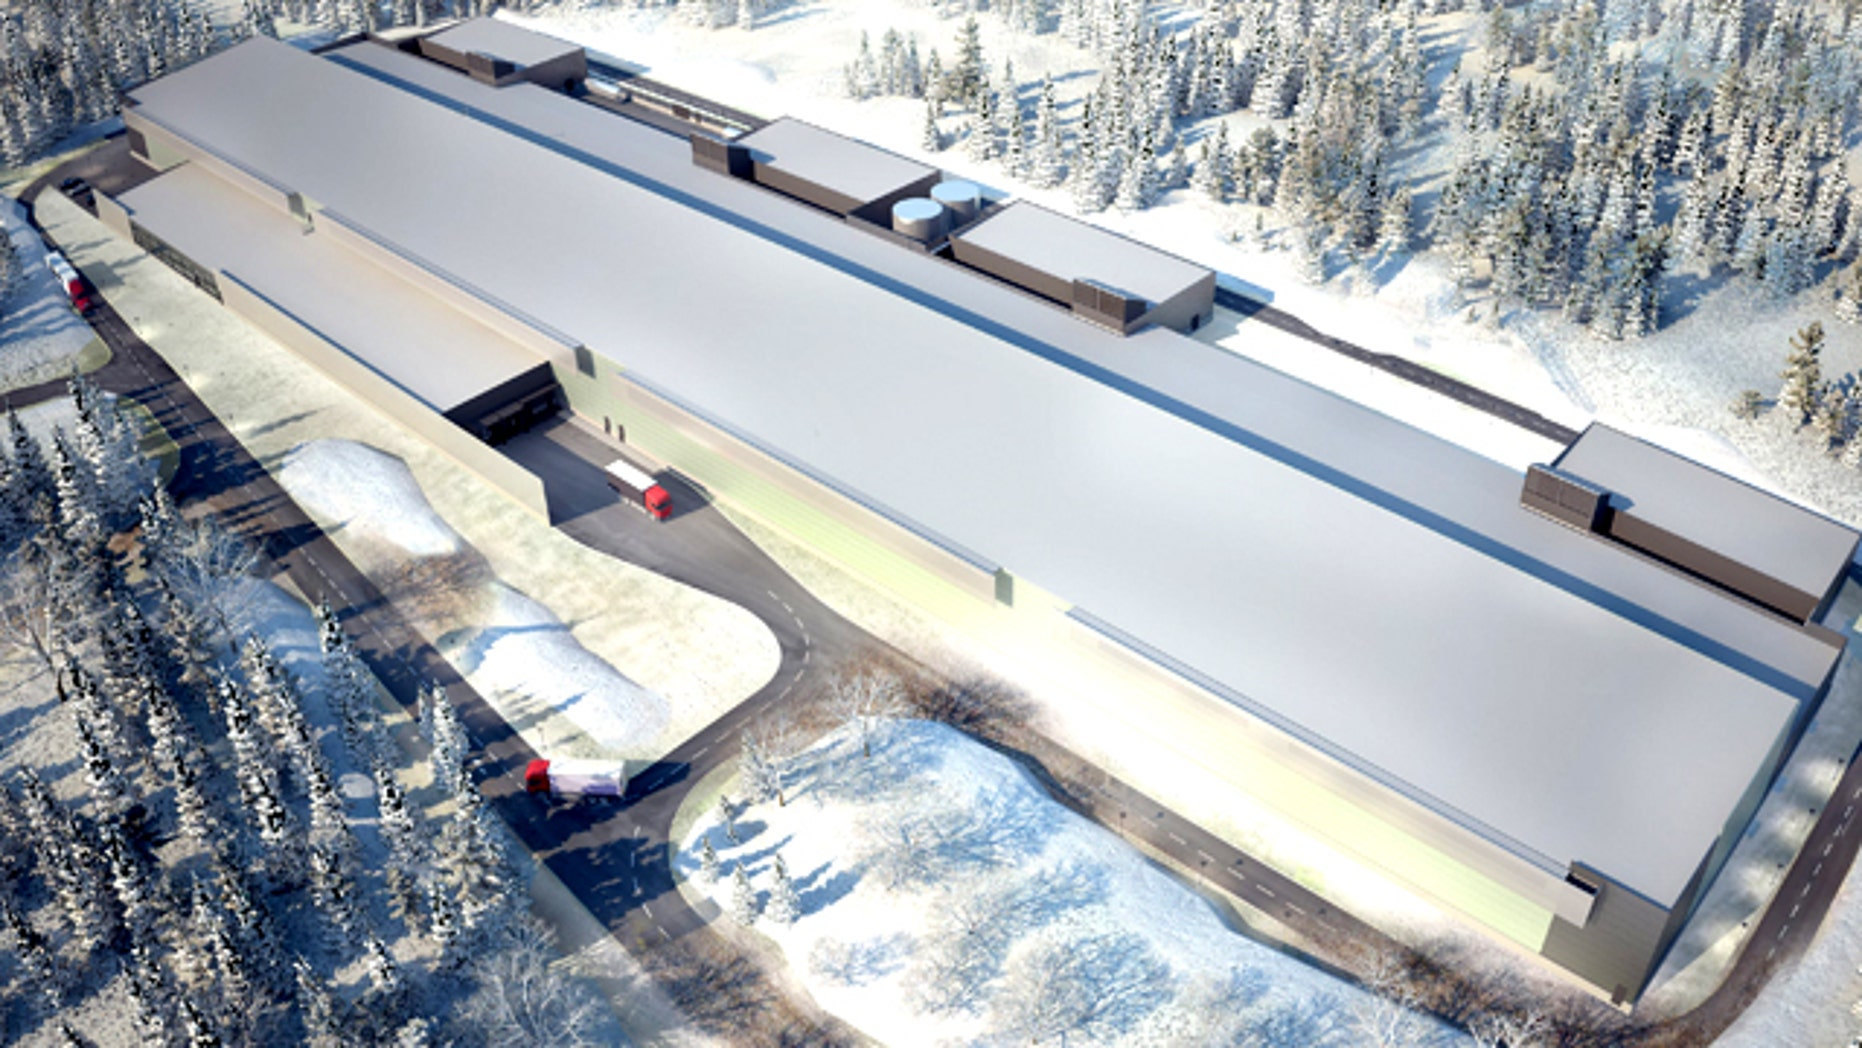 Oct. 27, 2011: An artist's rendering of Facebook's new server farm on the edge of the Arctic Circle, the company's first outside the U.S.